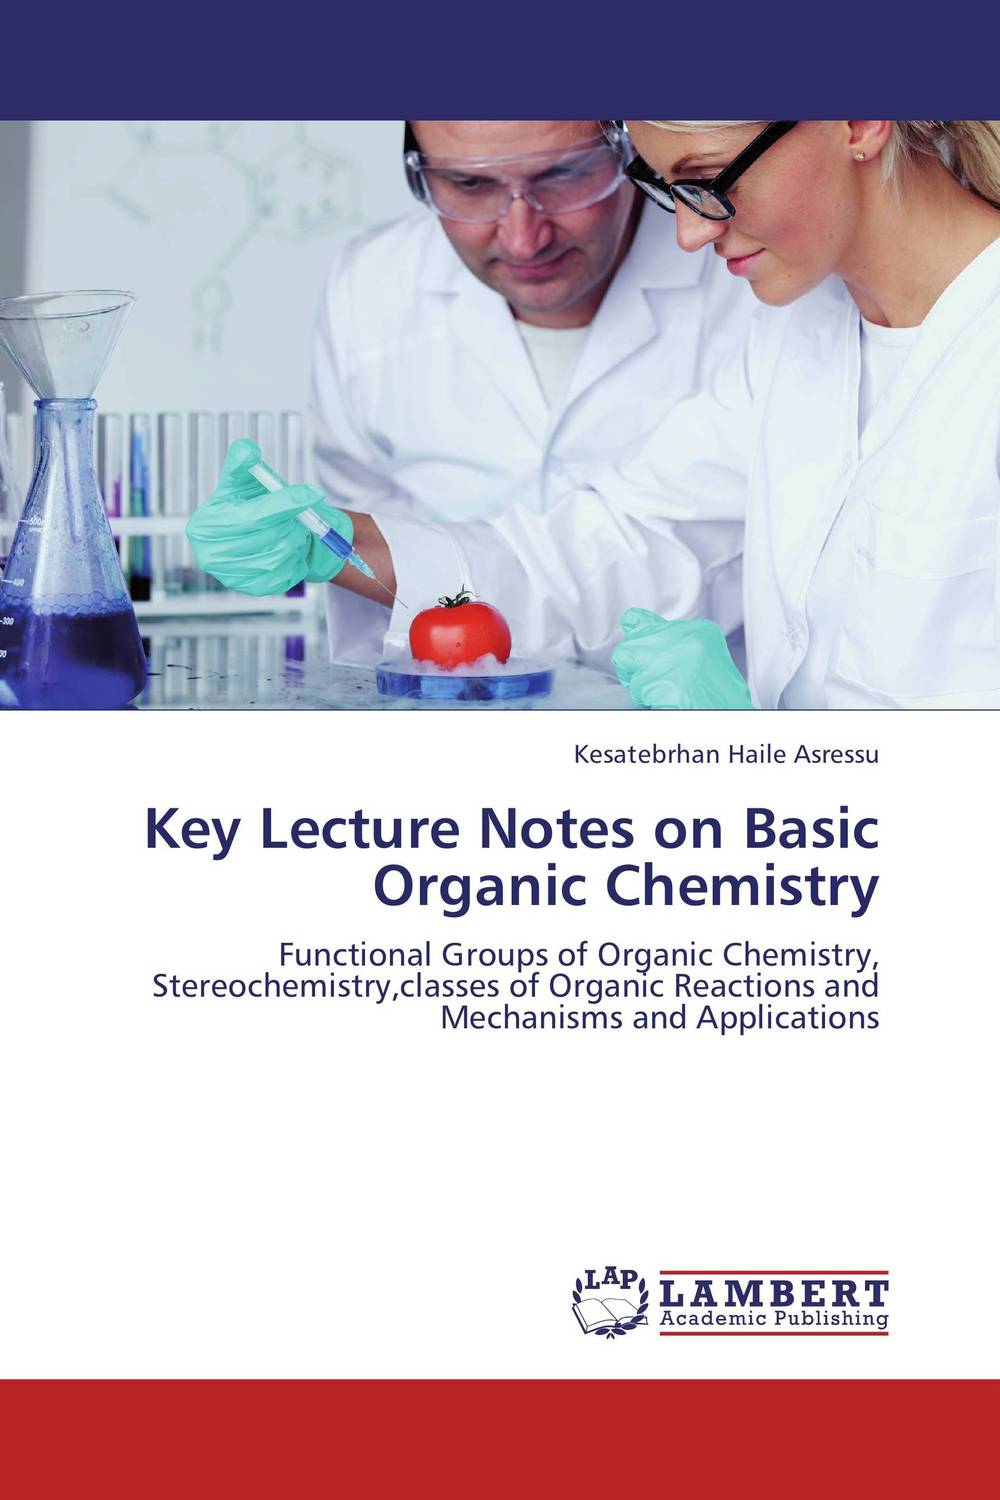 Key Lecture Notes on Basic Organic Chemistry organic syntheses based on name reactions 22